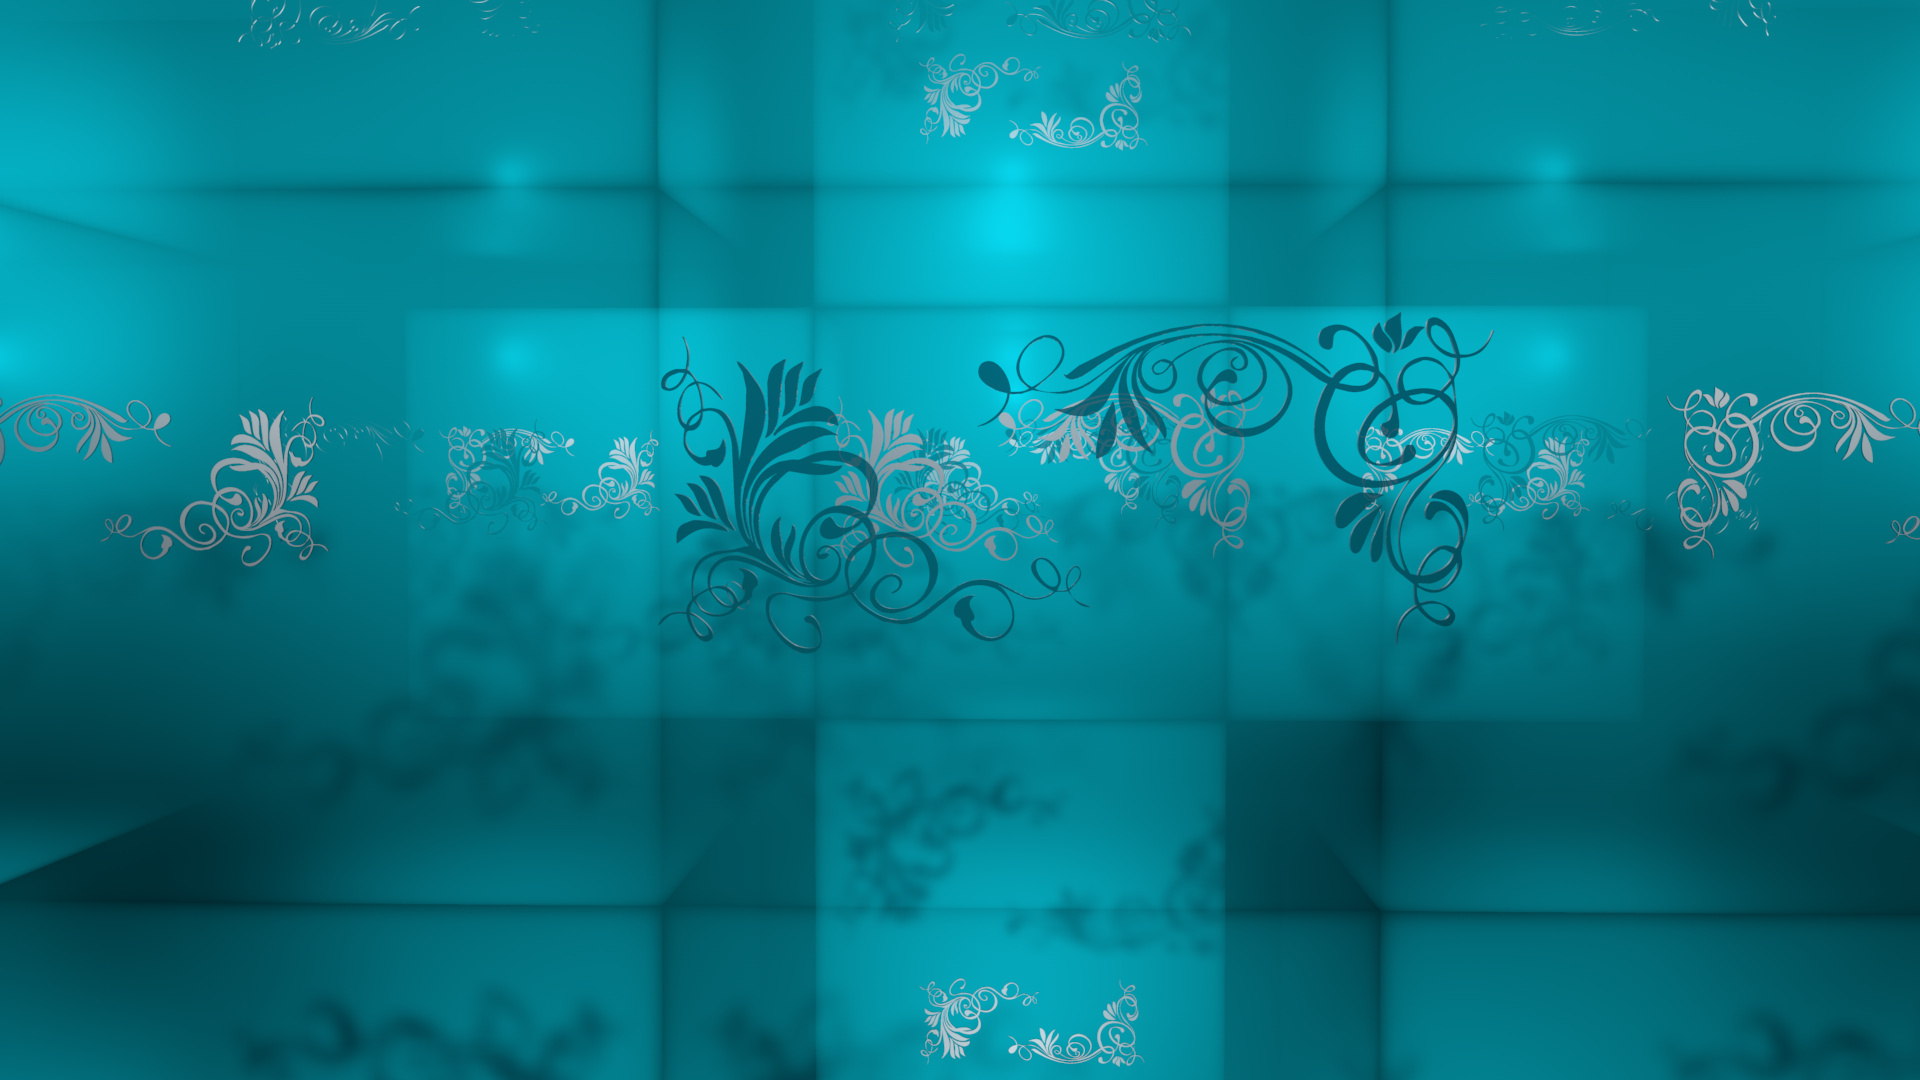 Tribal Cute Wallpaper Turquoise Wallpapers Designs Group 40